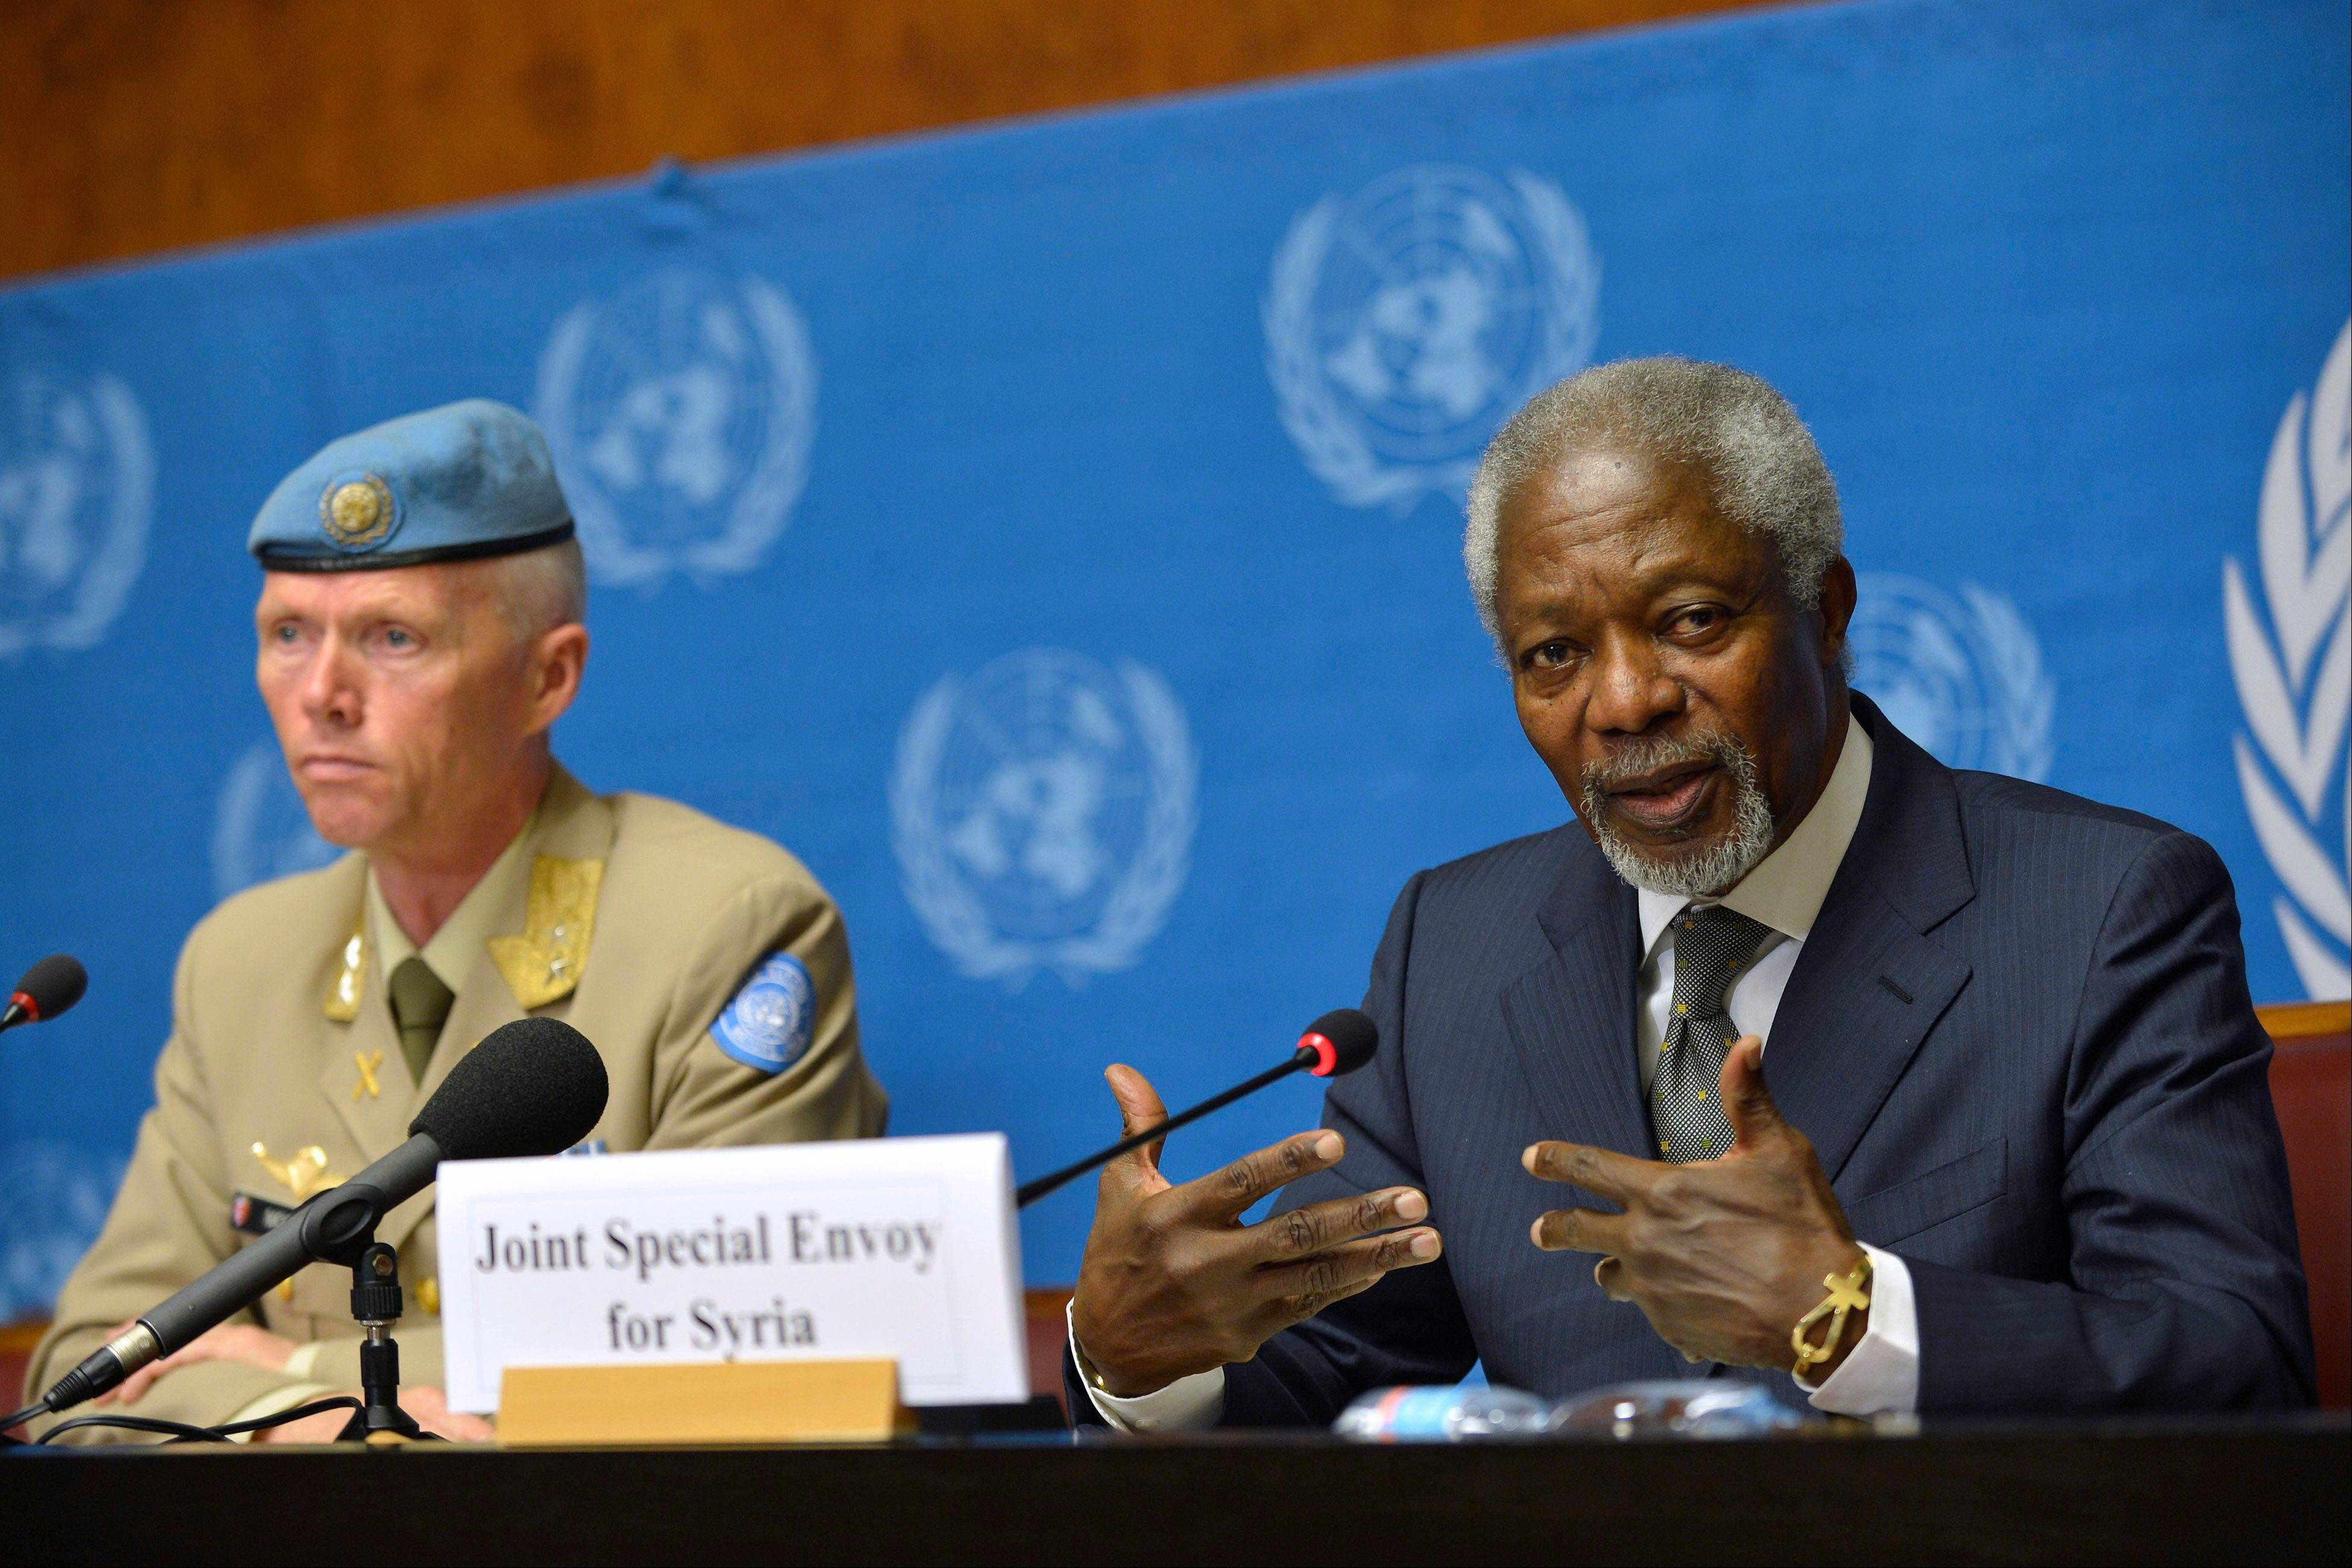 Kofi Annan, right, Joint Special Envoy of the United Nations and the Arab League for Syria, and Major-General Robert Mood, left, head of the U.N. Supervision Mission in Syria and Chief Military Observer, look on during a news briefing Friday at the United Nations in Geneva, Switzerland. Annan said he continues to hold out hope that his six-point peace plan might succeed eventually in Syria.